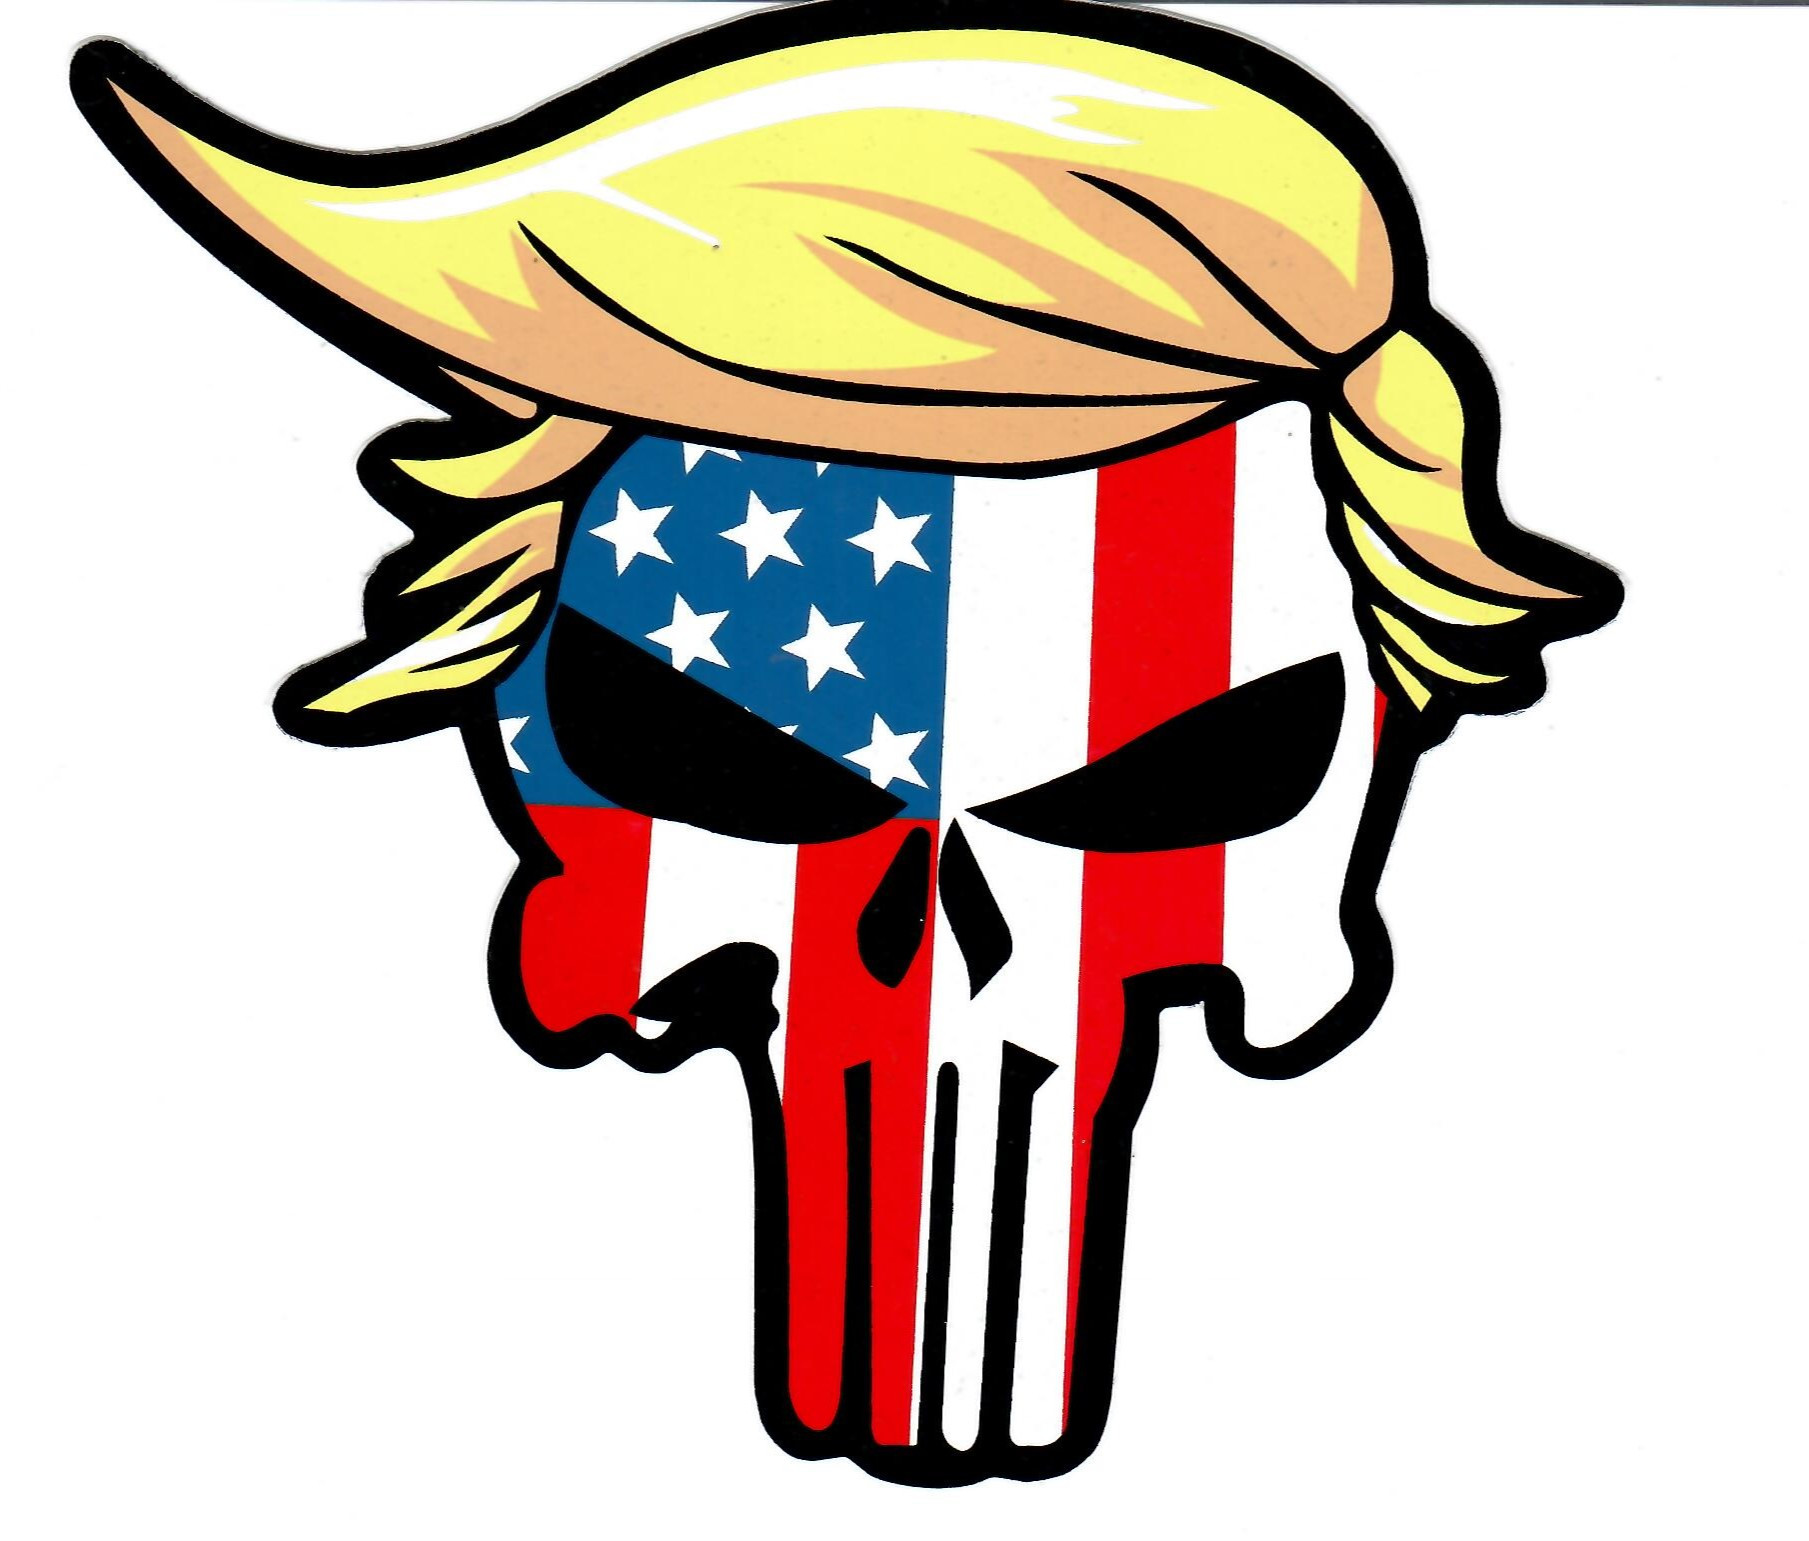 Trump as The Punisher